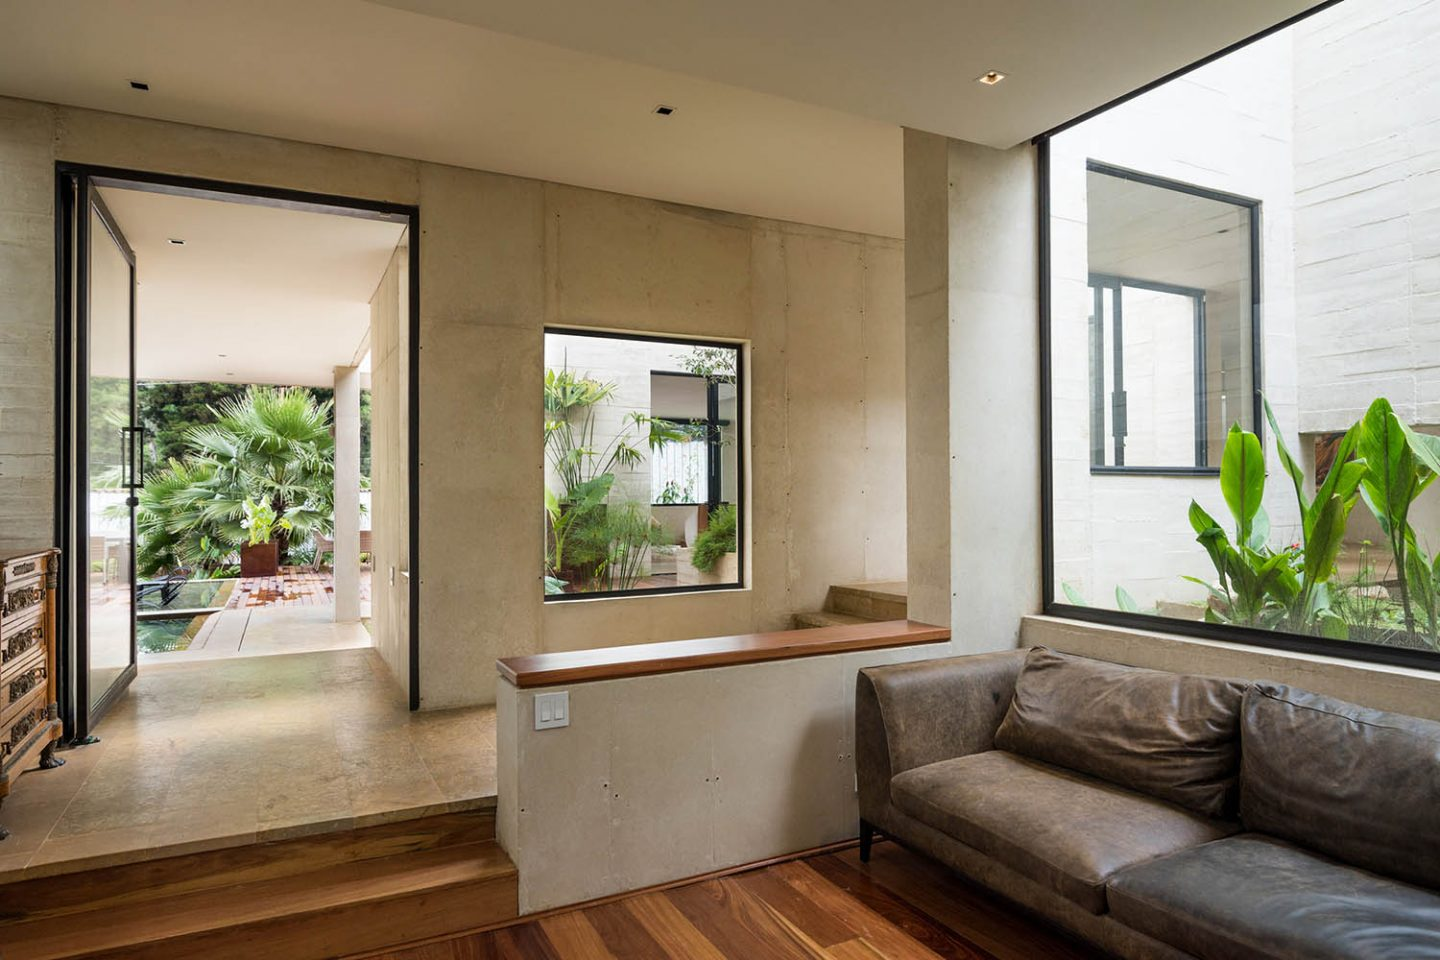 iGNANT_Architecture_Connatural_Garden_House_04